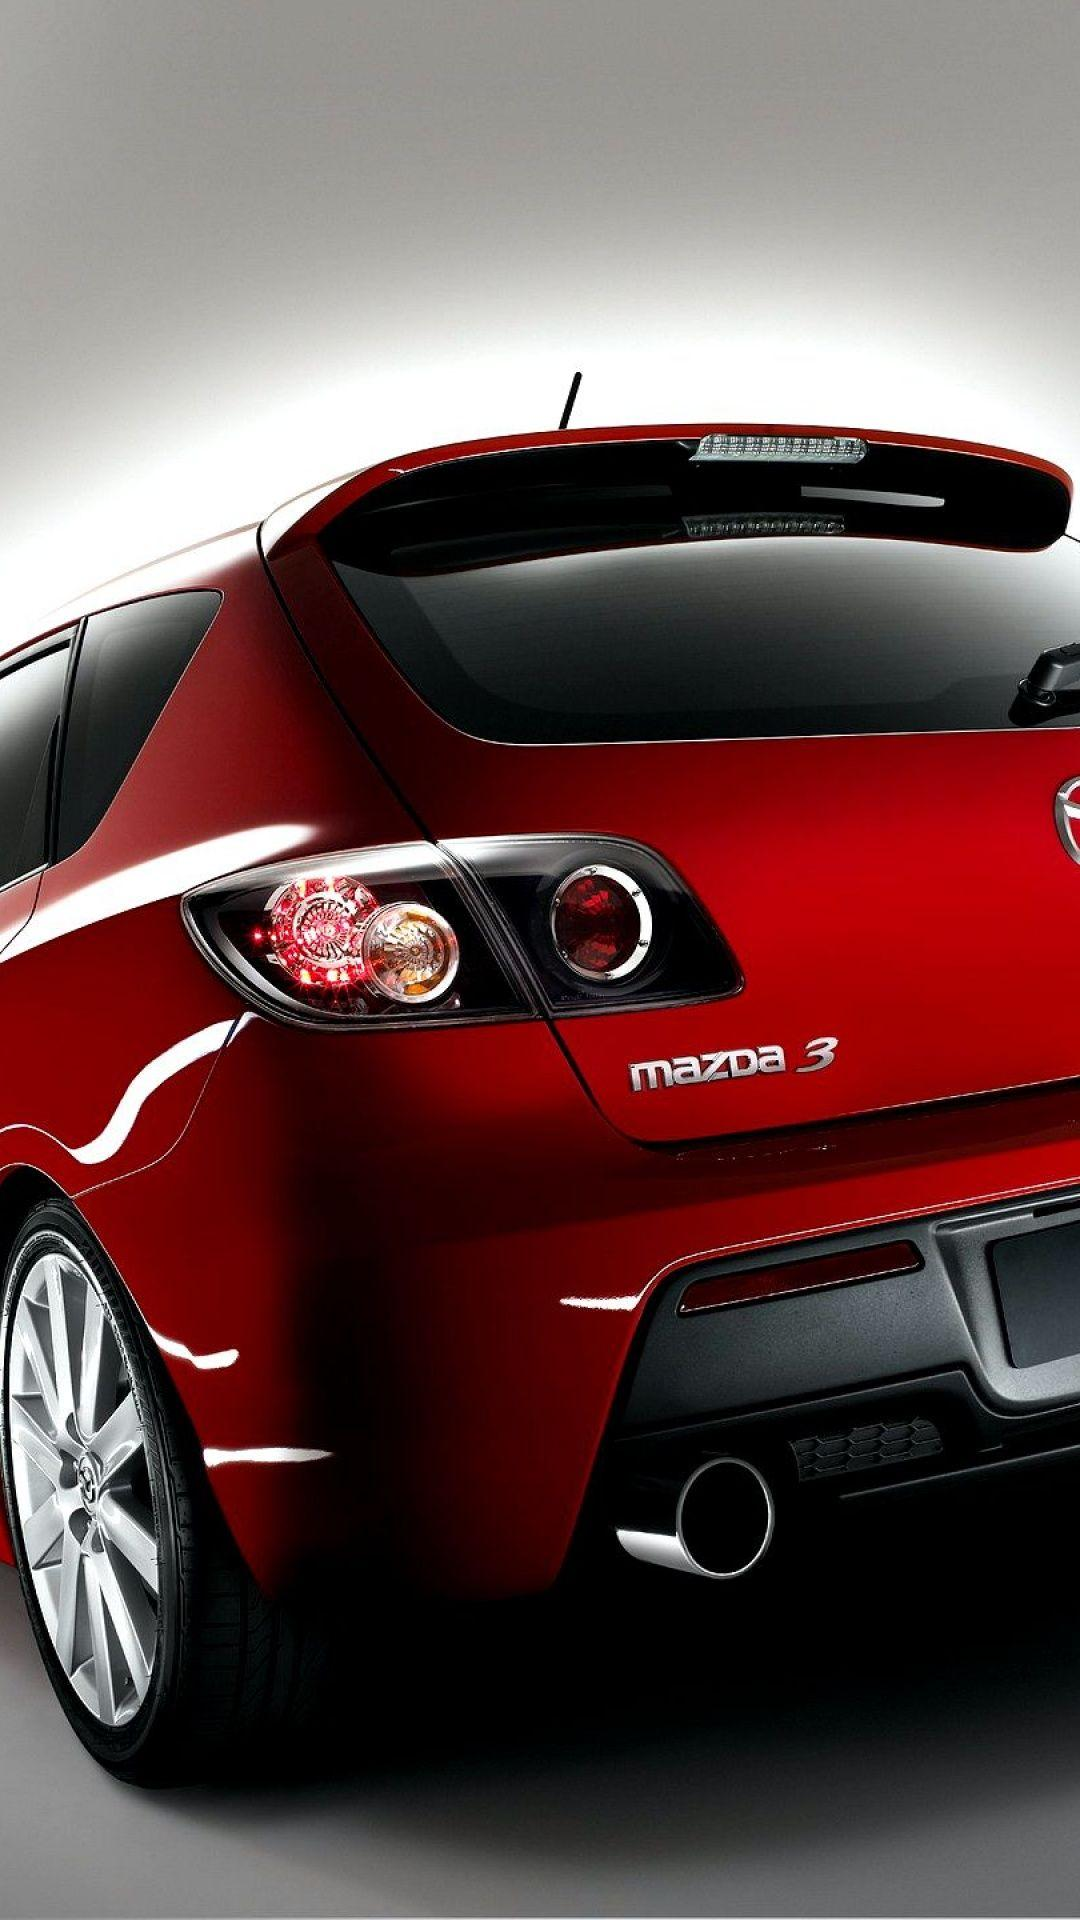 Mazda 3 MPS iPhone 6 Wallpapers